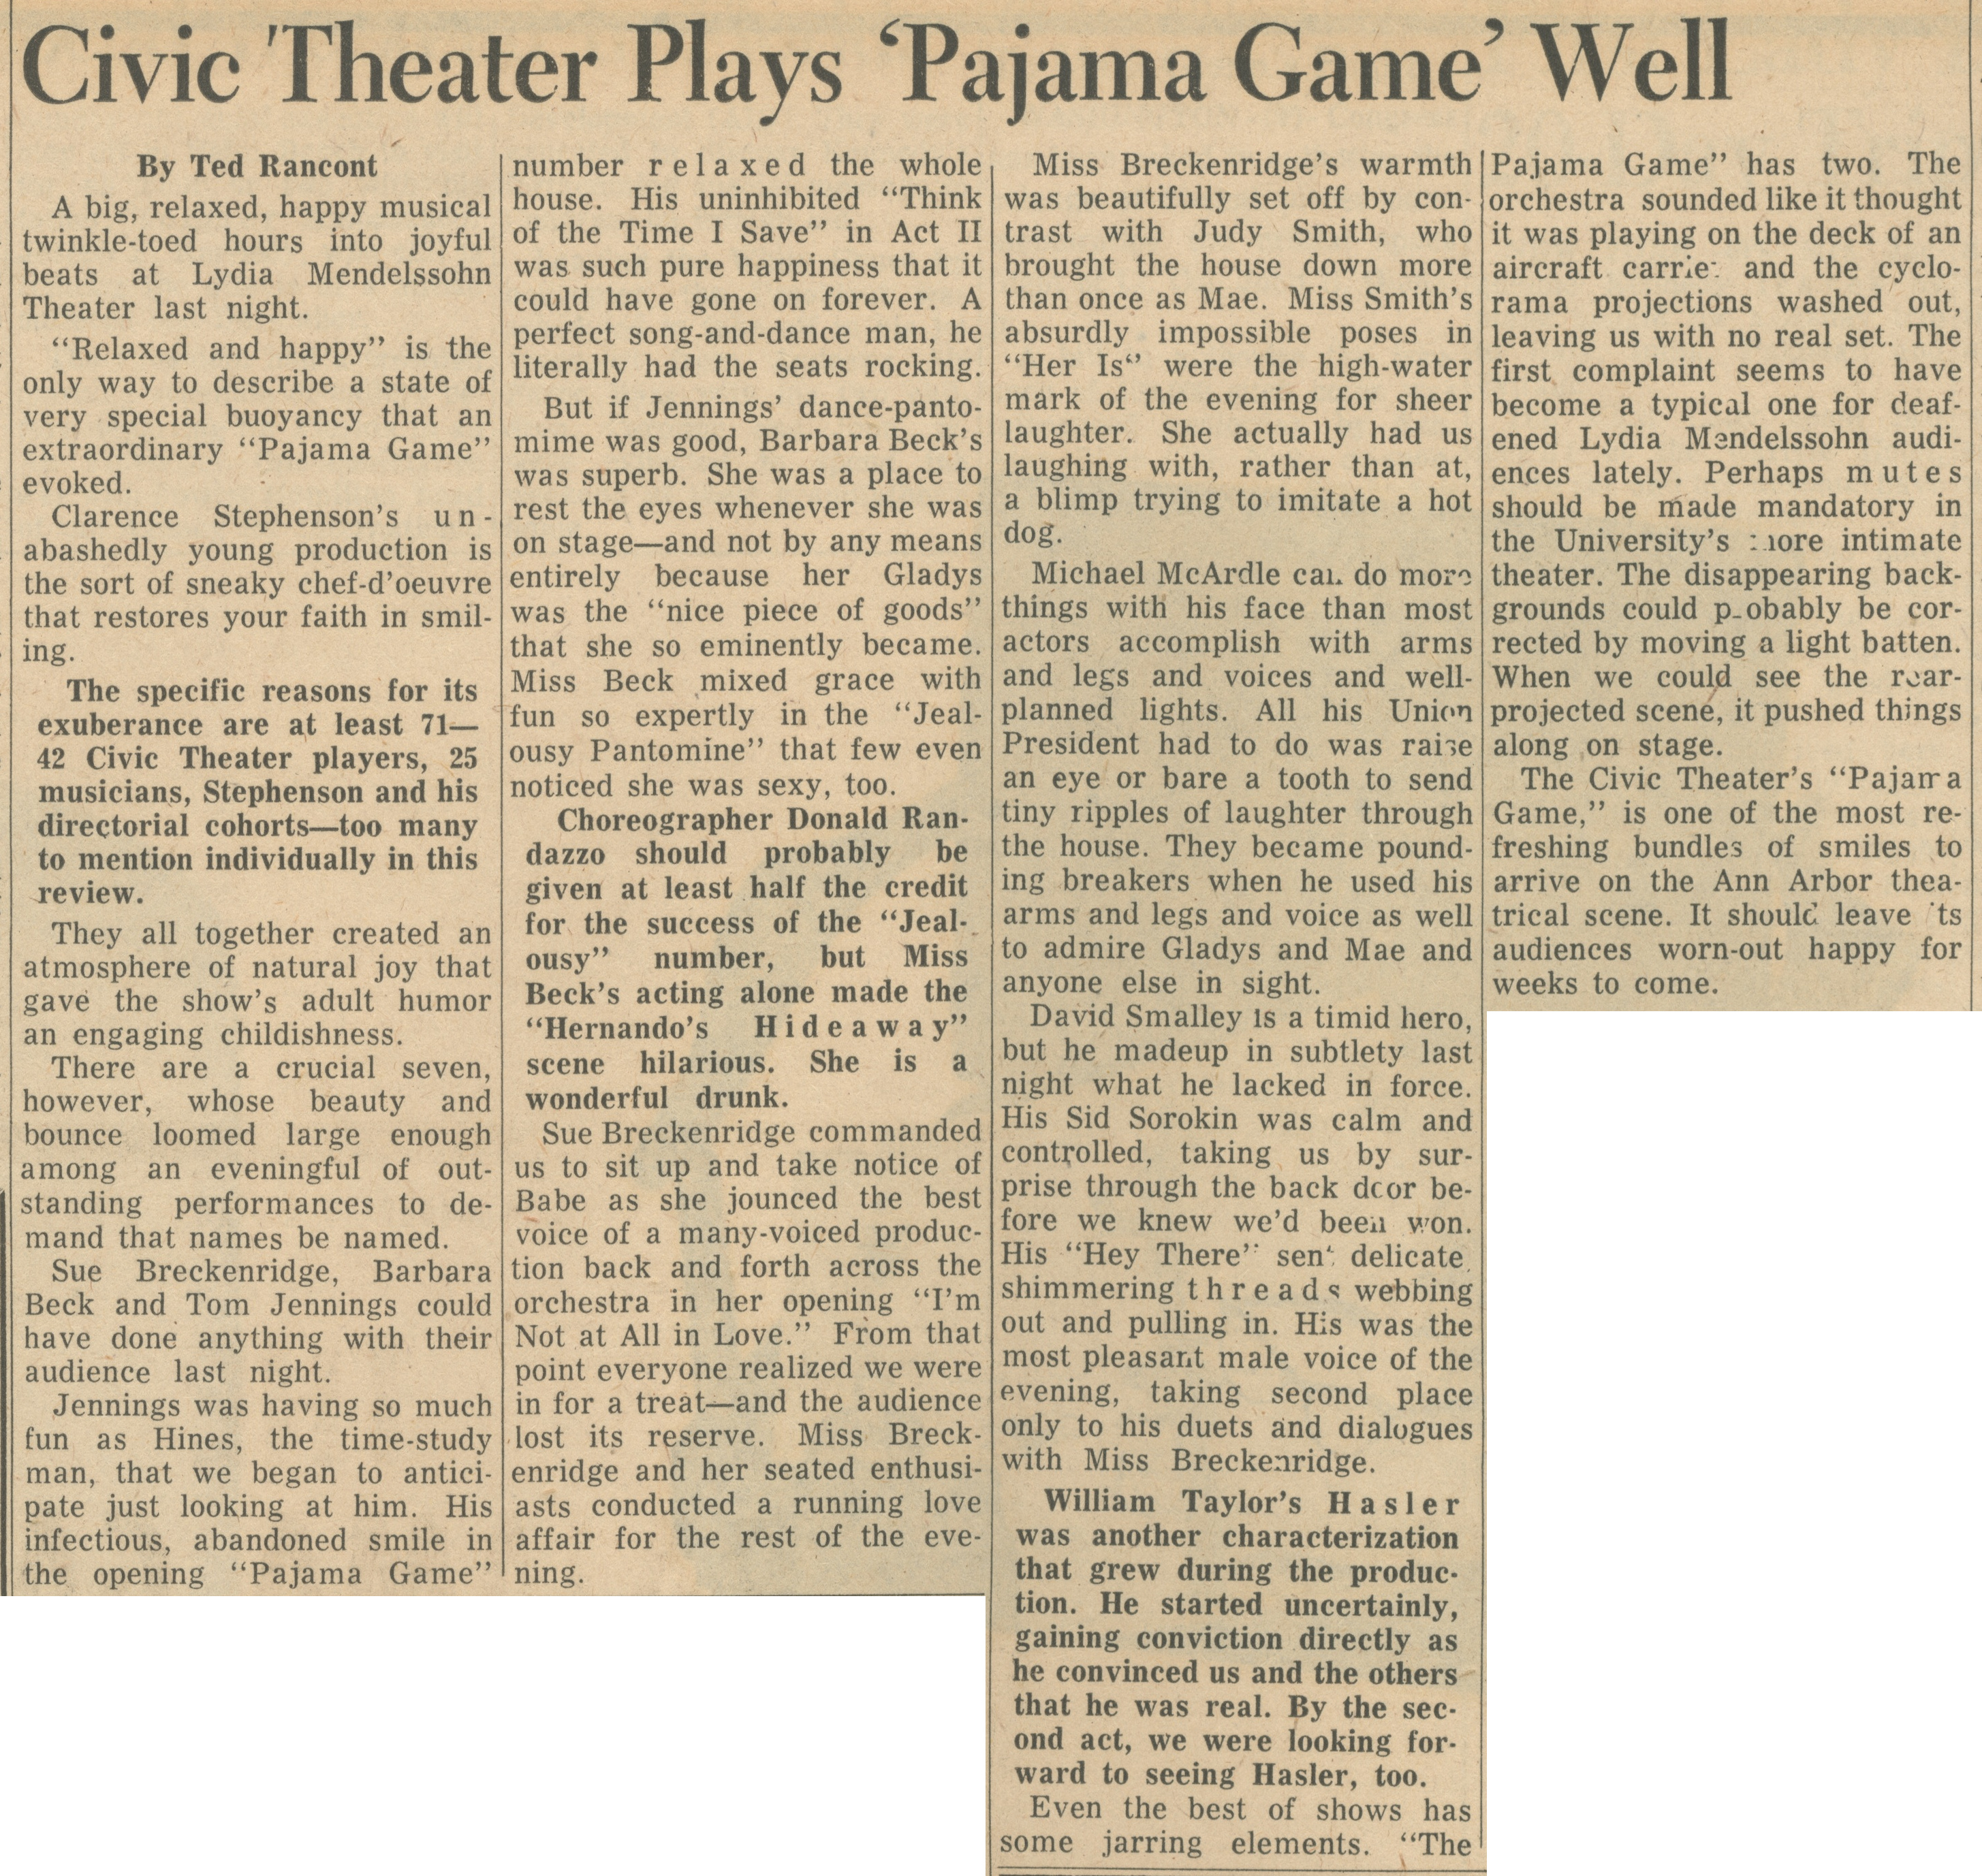 Civic Theater Plays 'Pajama Game' Well image